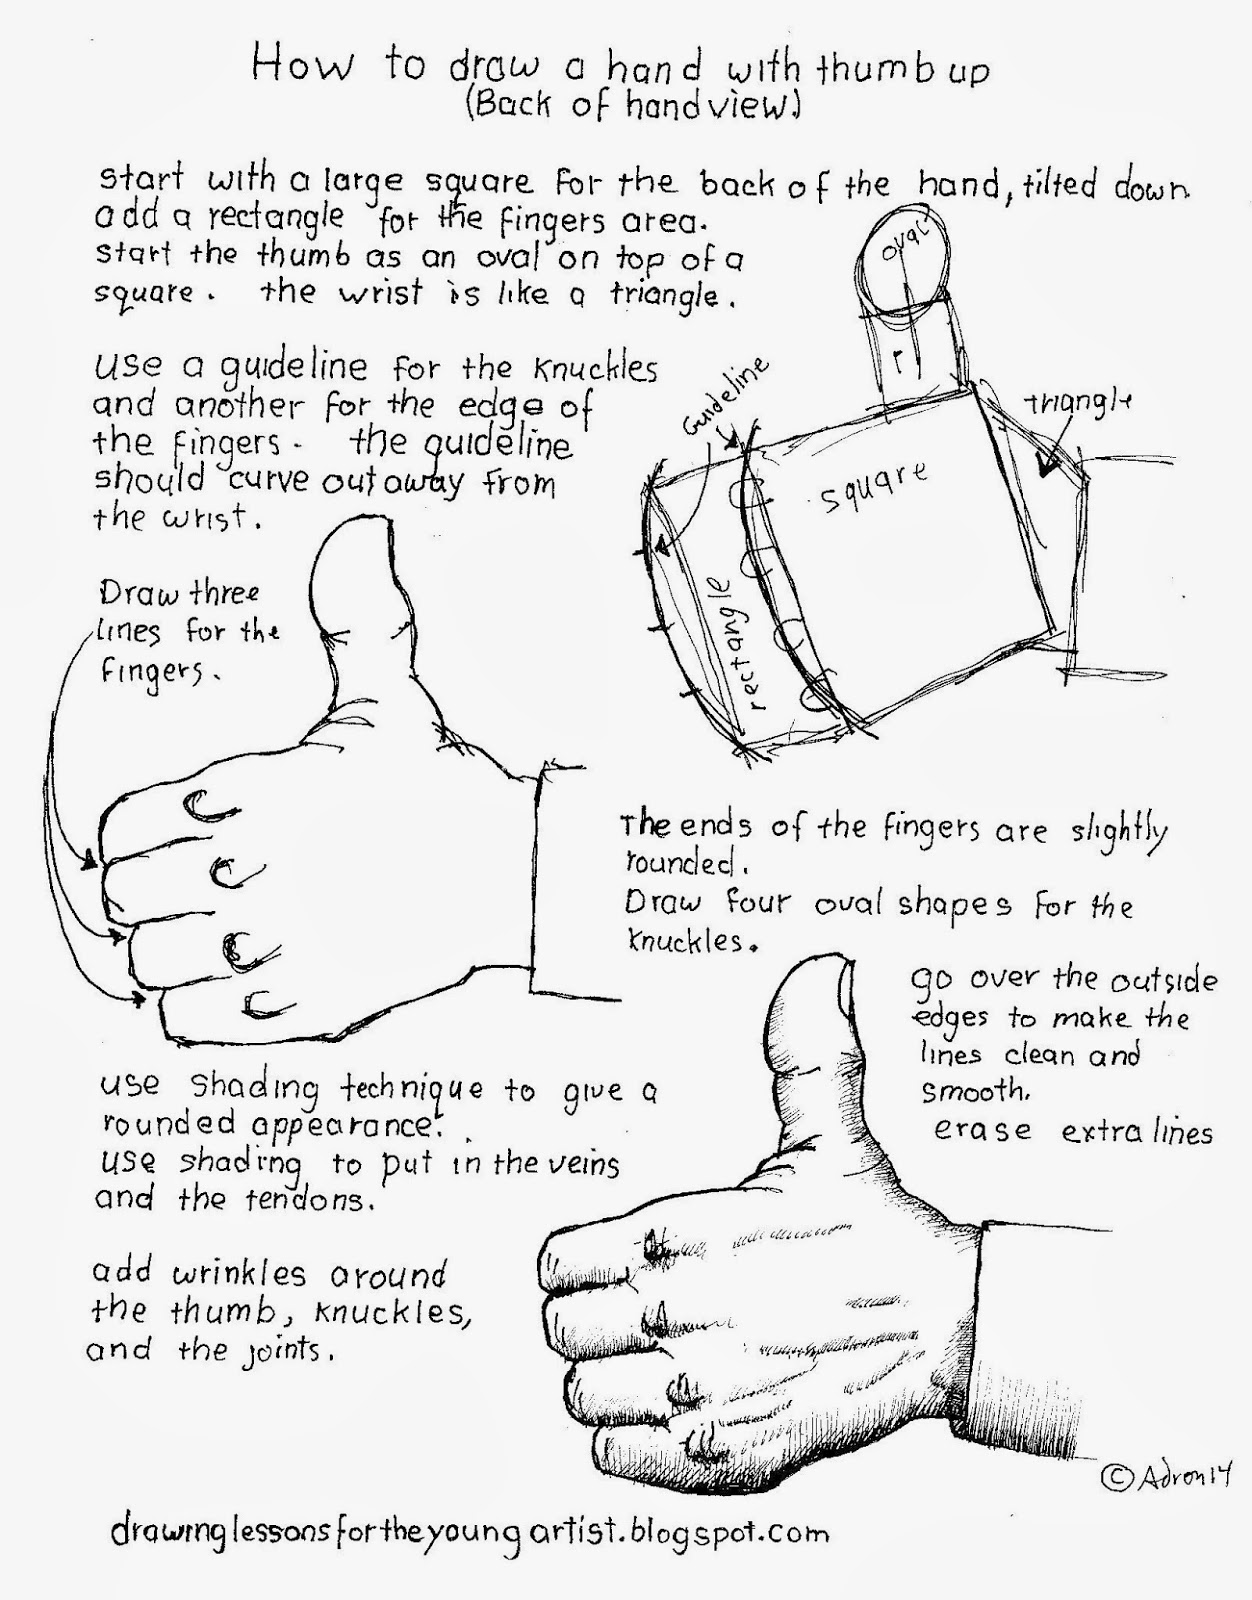 Worksheets How To Draw Worksheets how to draw worksheets for the young artist a hand thumbs up back view